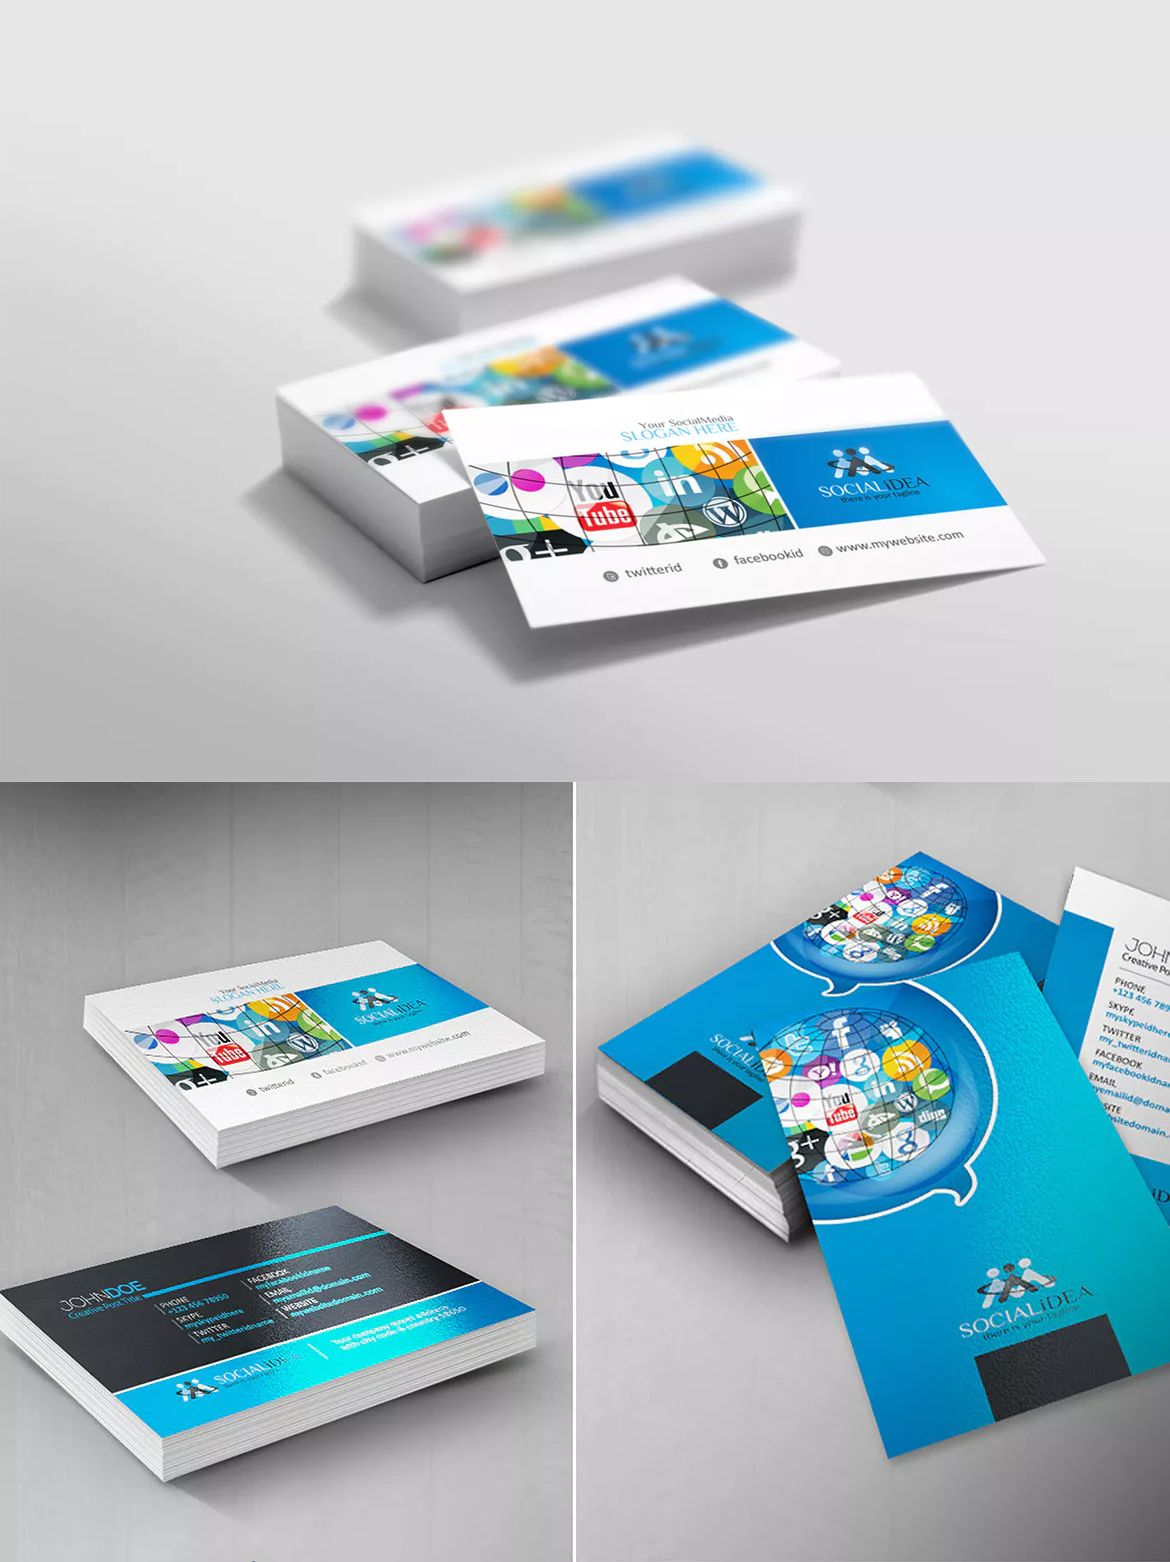 Social media business card template eps business card templates social media business card template eps cheaphphosting Image collections